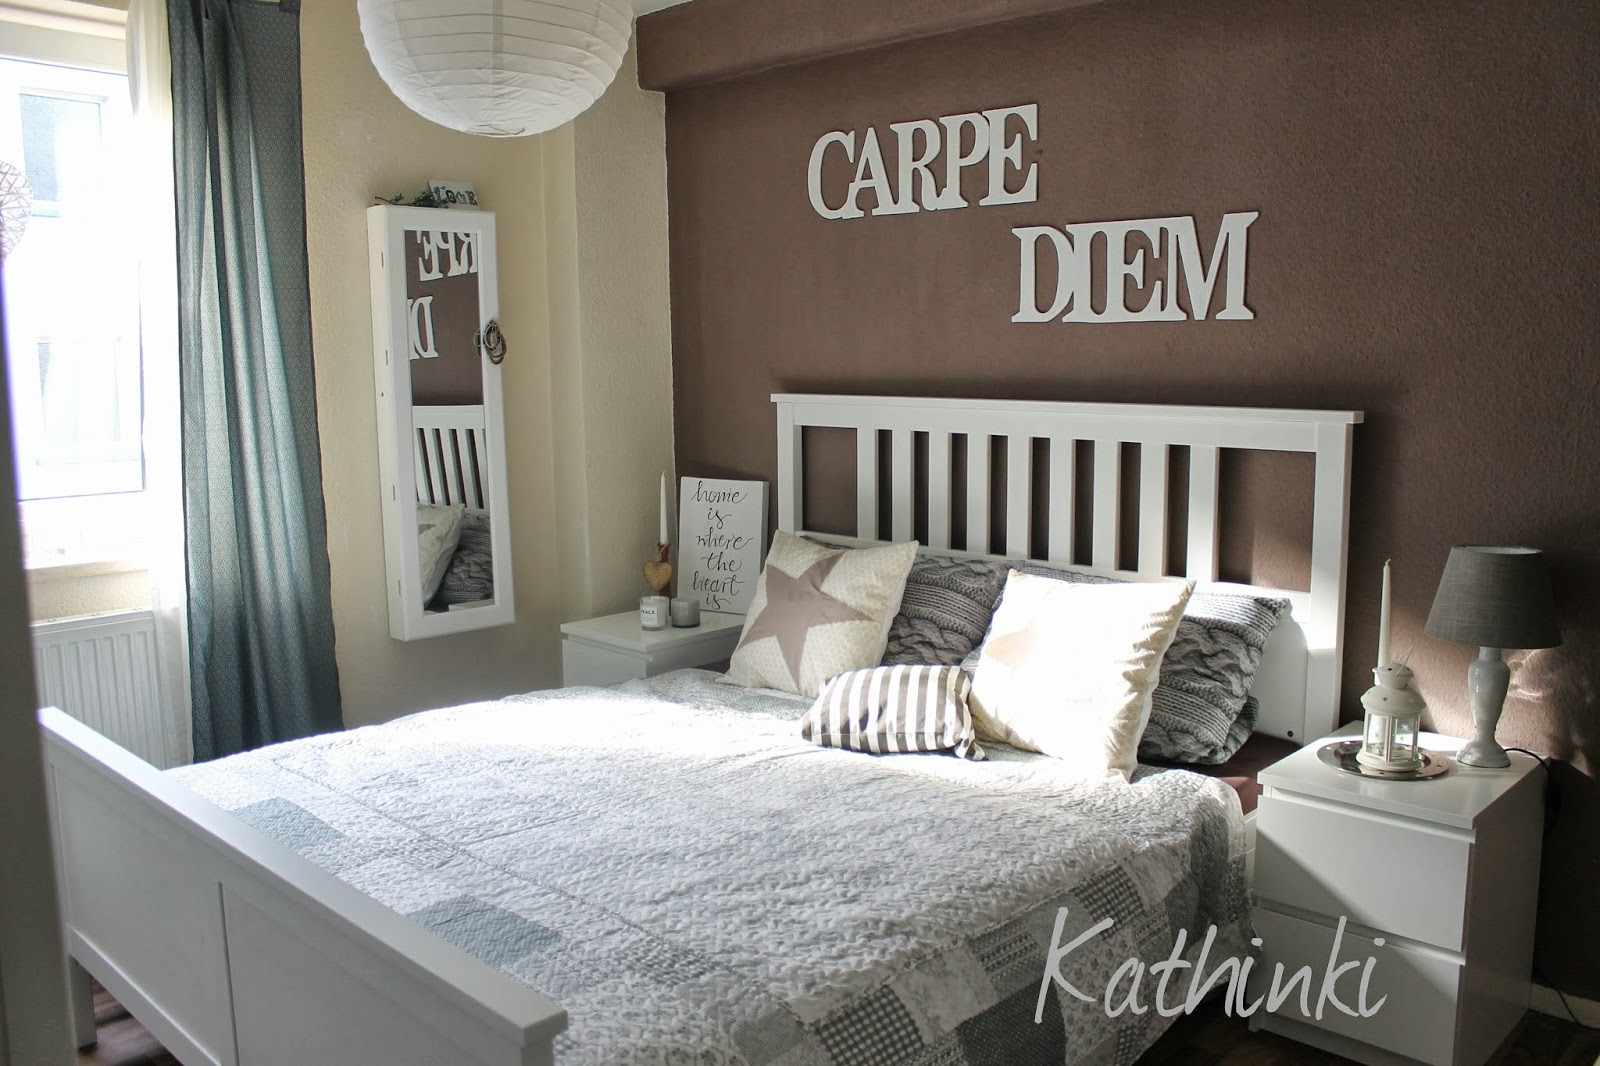 kathinkis dekowelt kuschelzone diy projekt schriftzug carpe diem. Black Bedroom Furniture Sets. Home Design Ideas